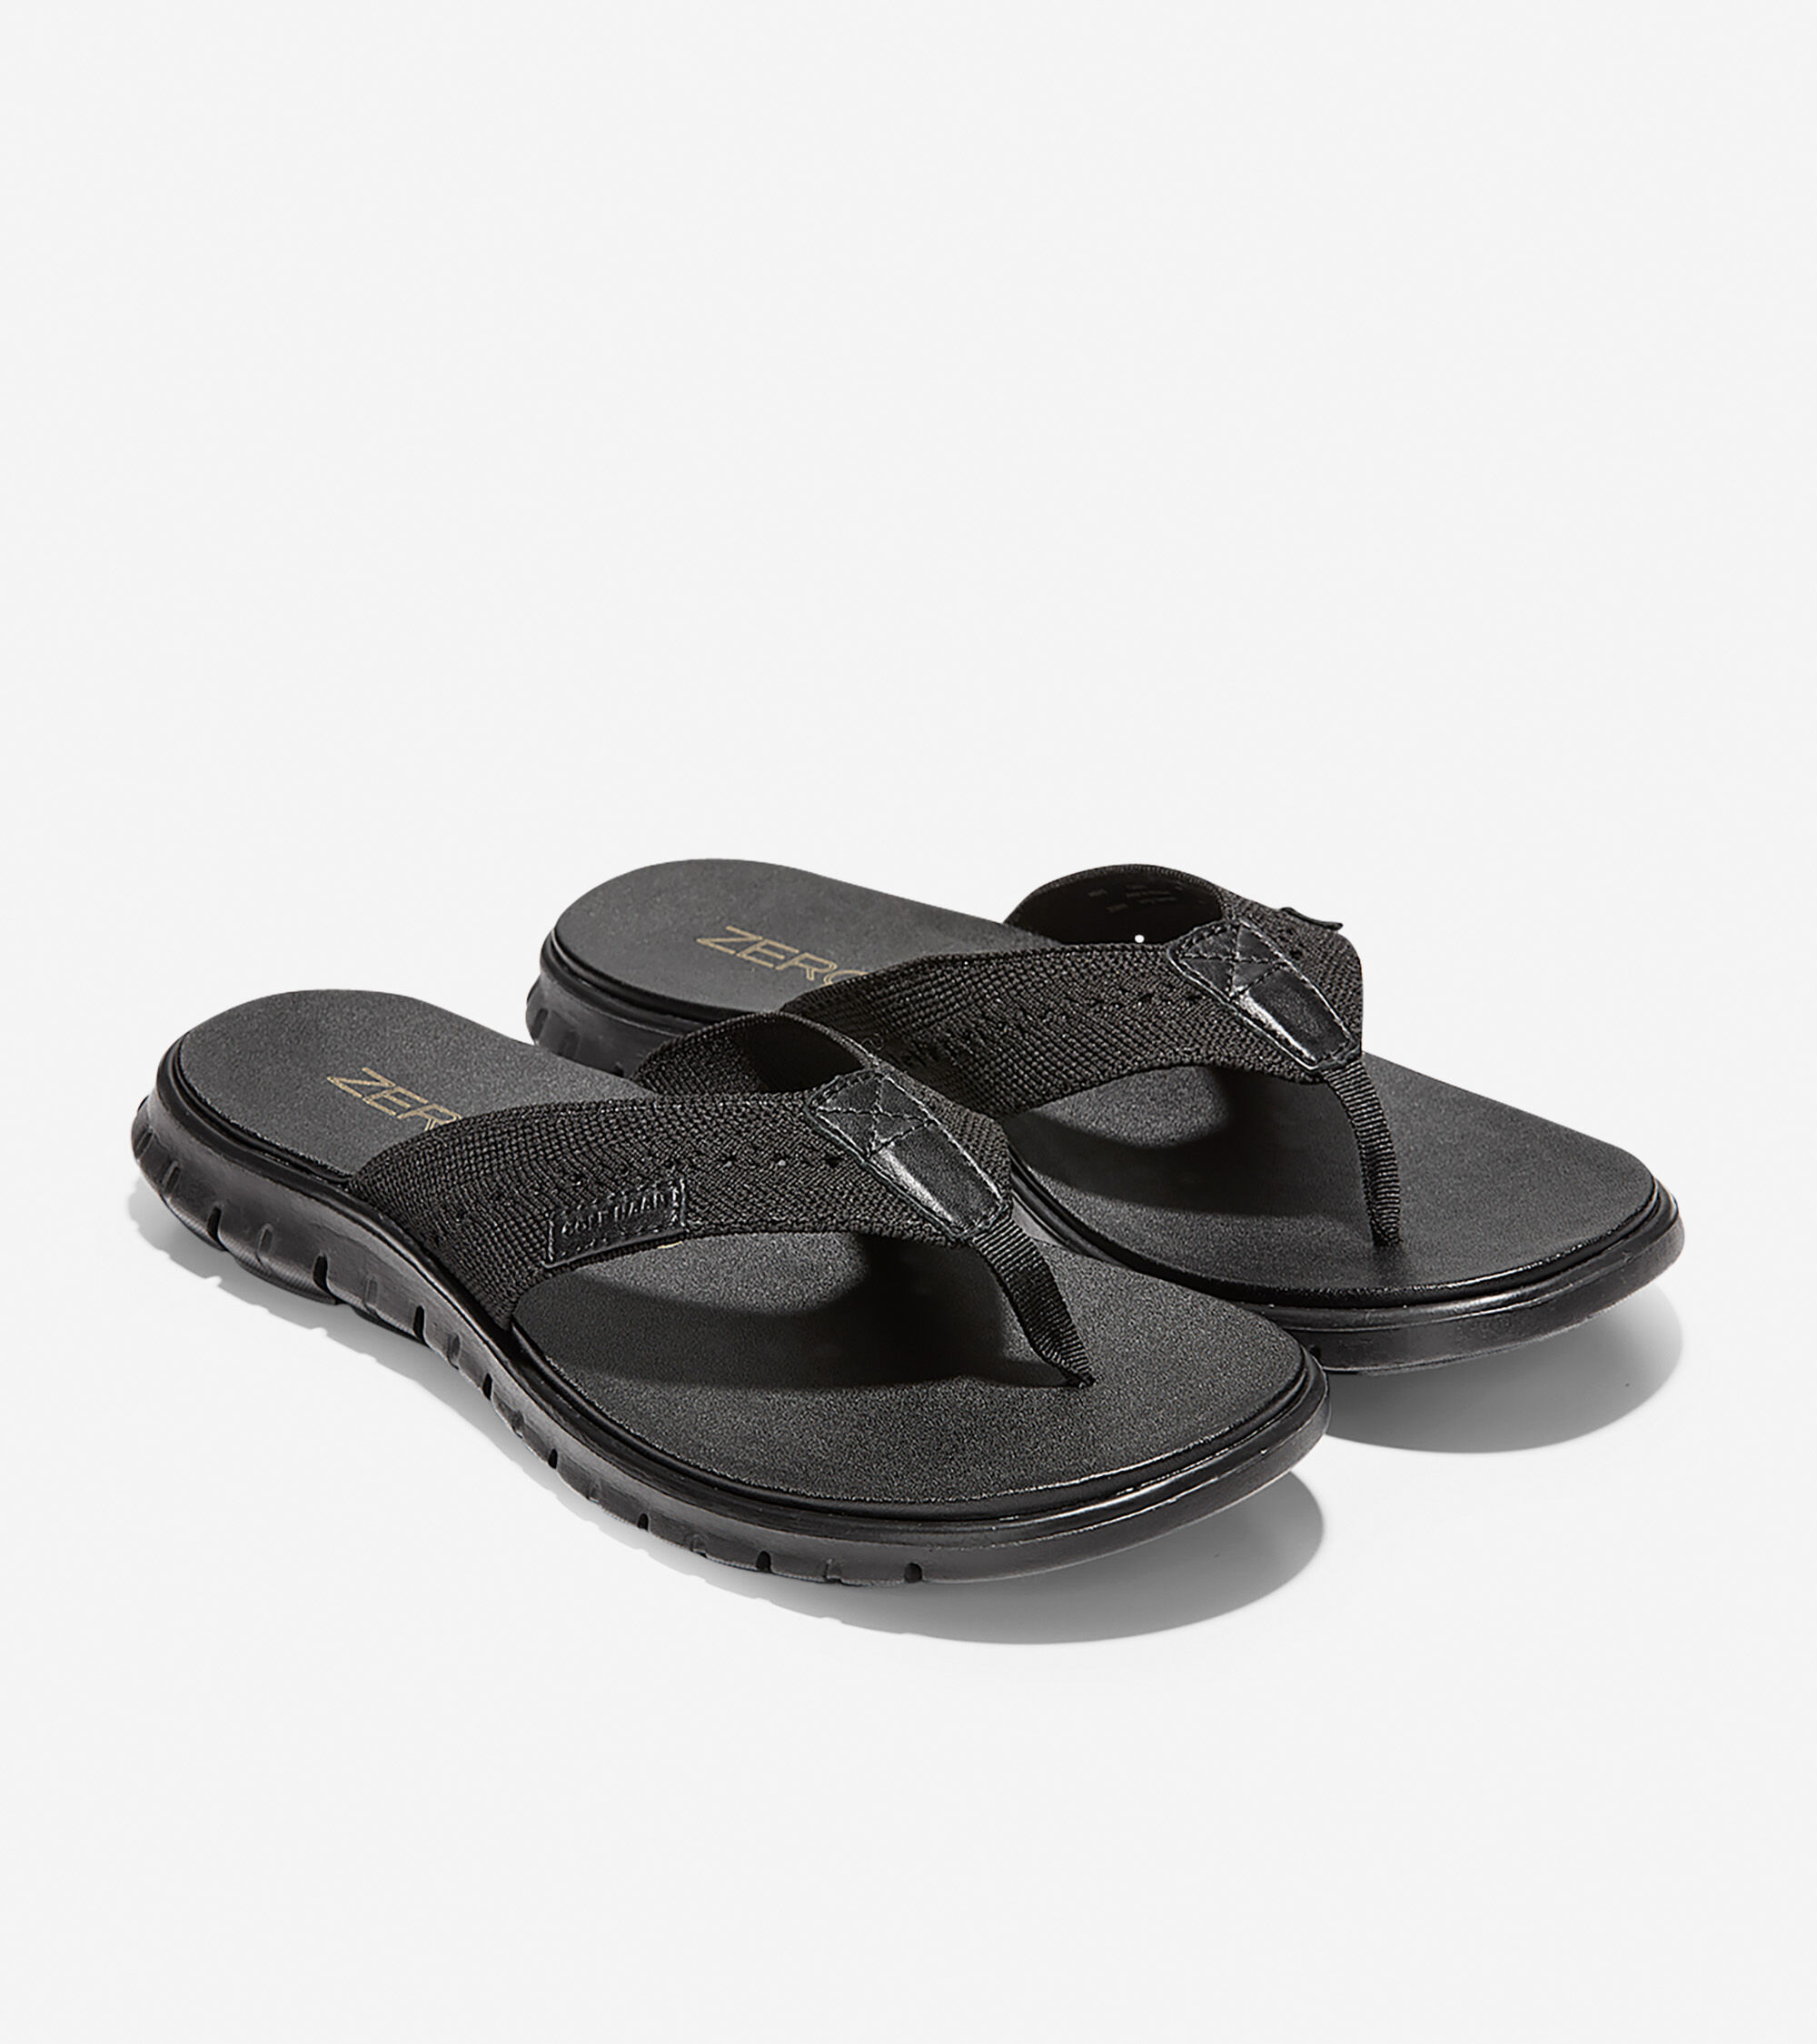 13a4a882e592 Men s ZEROGRAND Thong Sandals with Stitchlite™ in Black